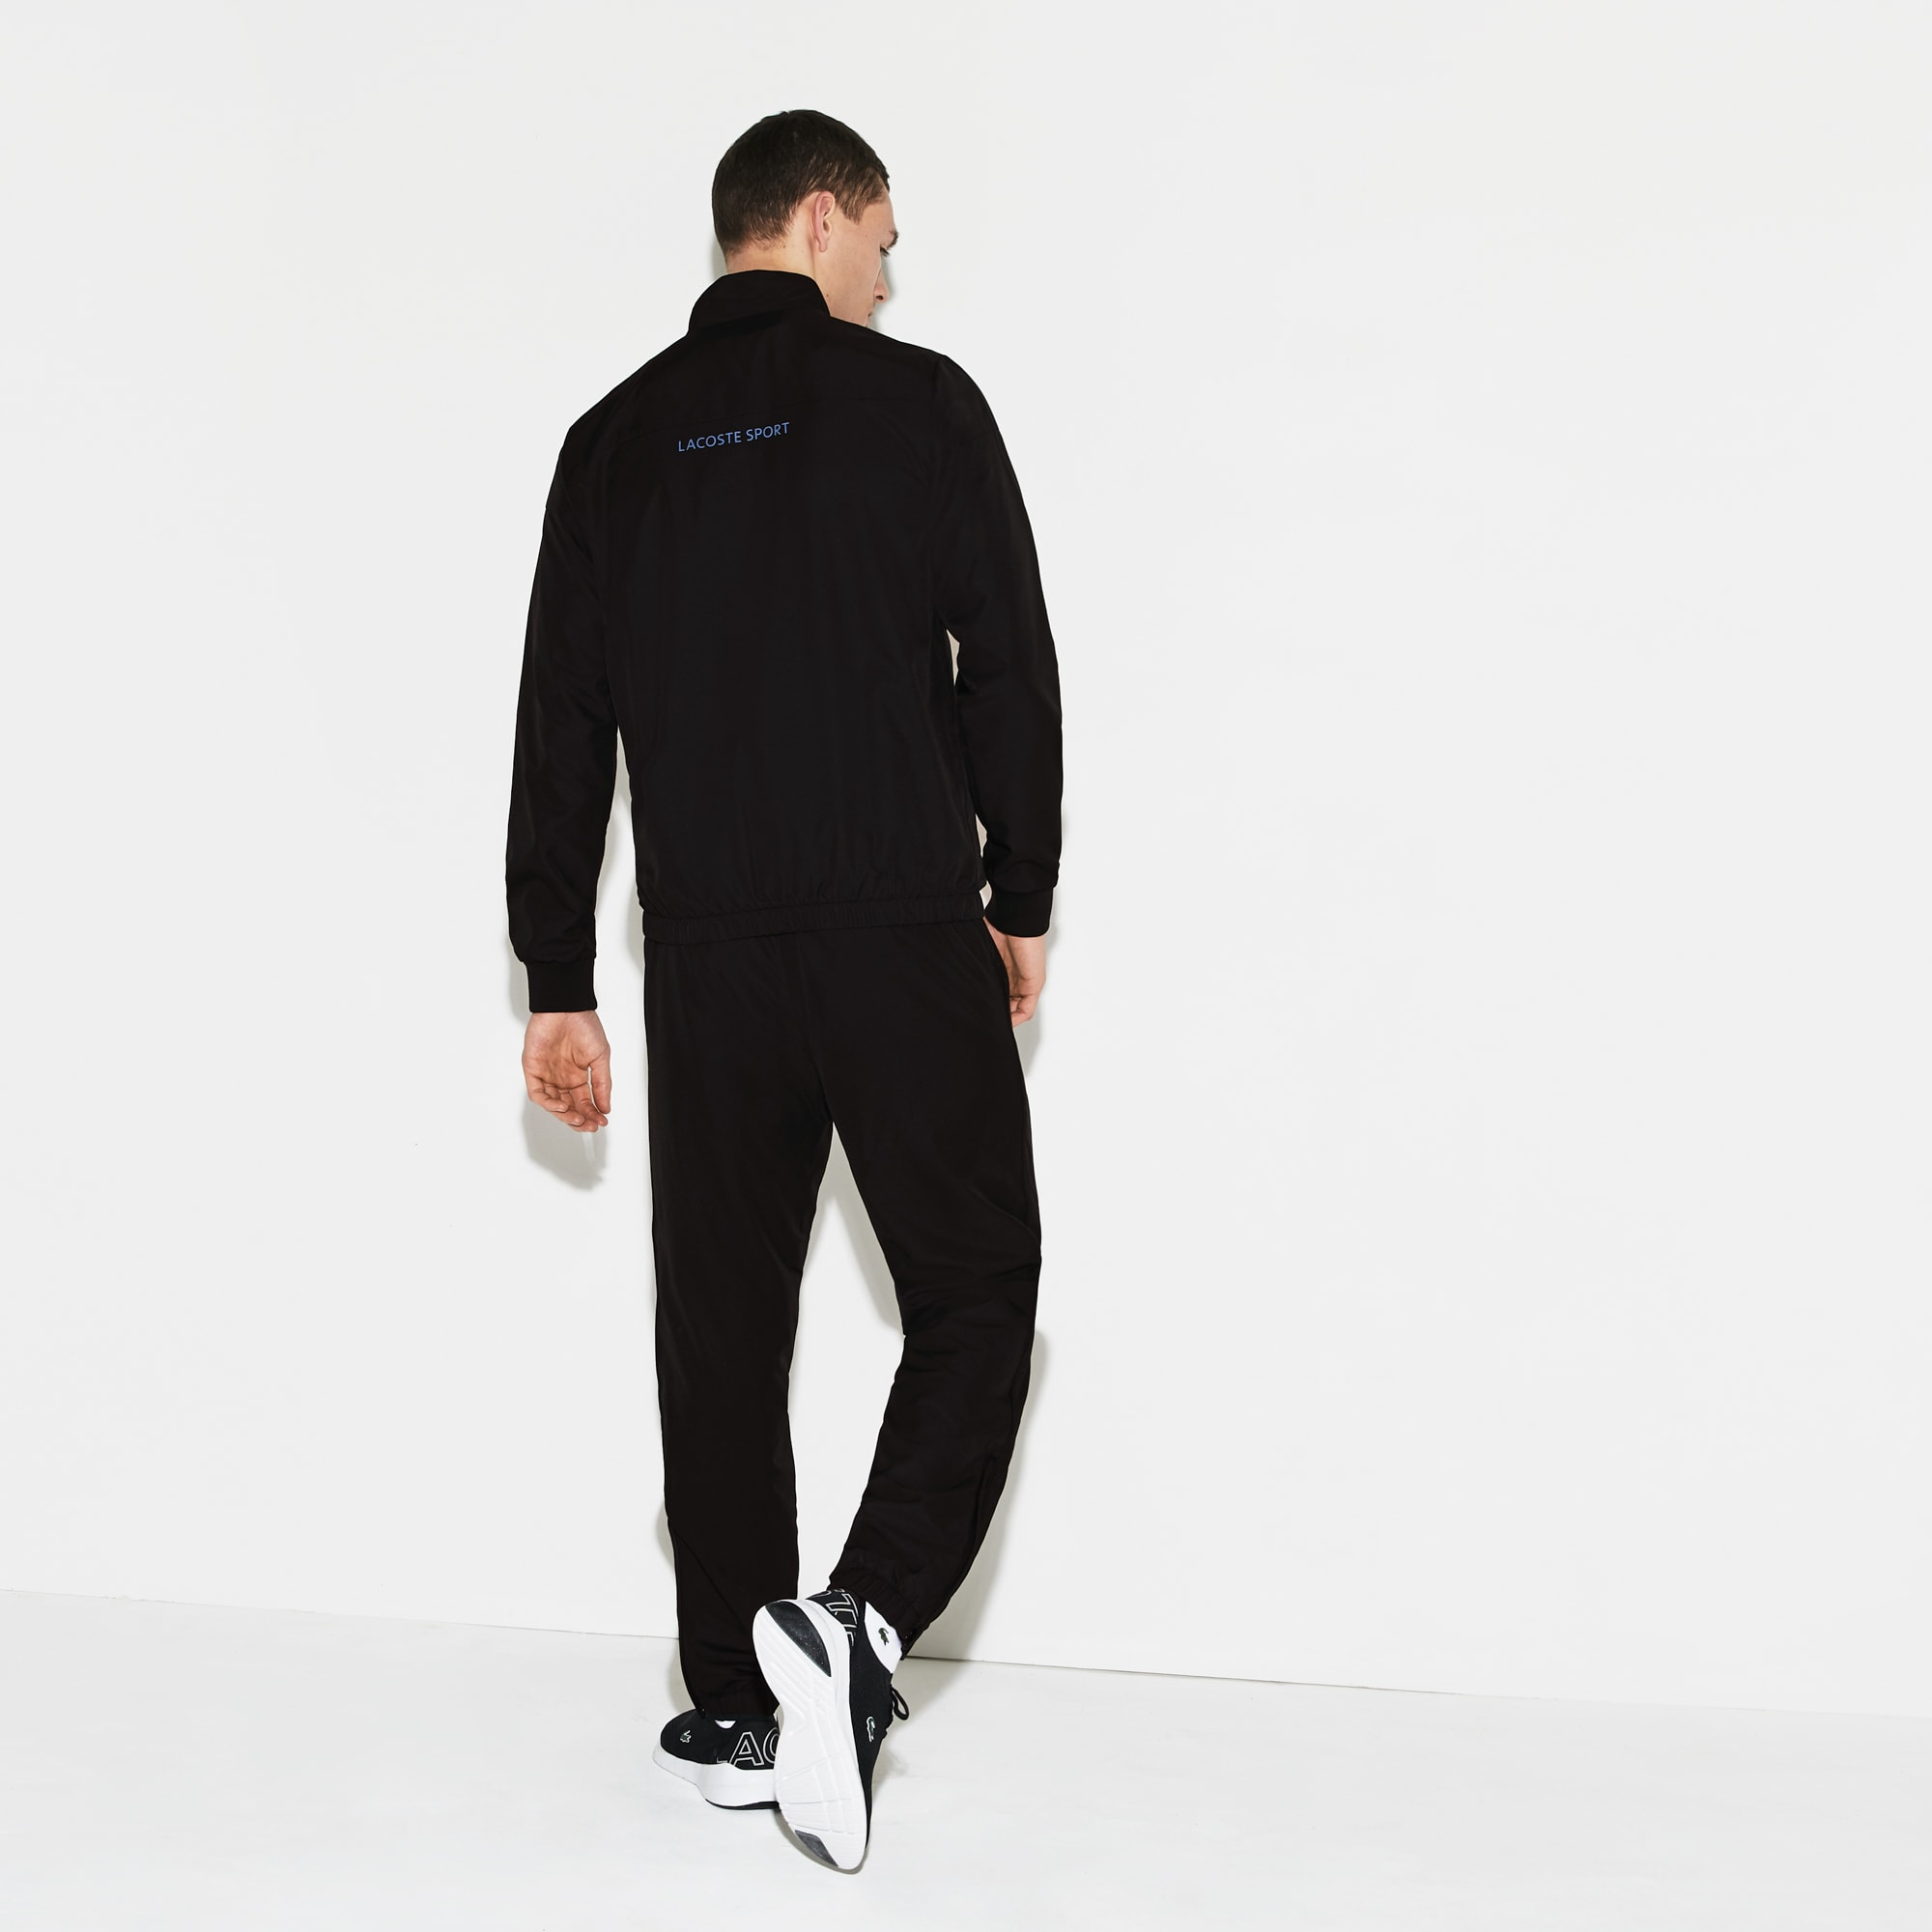 Men's Lacoste SPORT Lettered Colourblock Tennis Sweatsuit